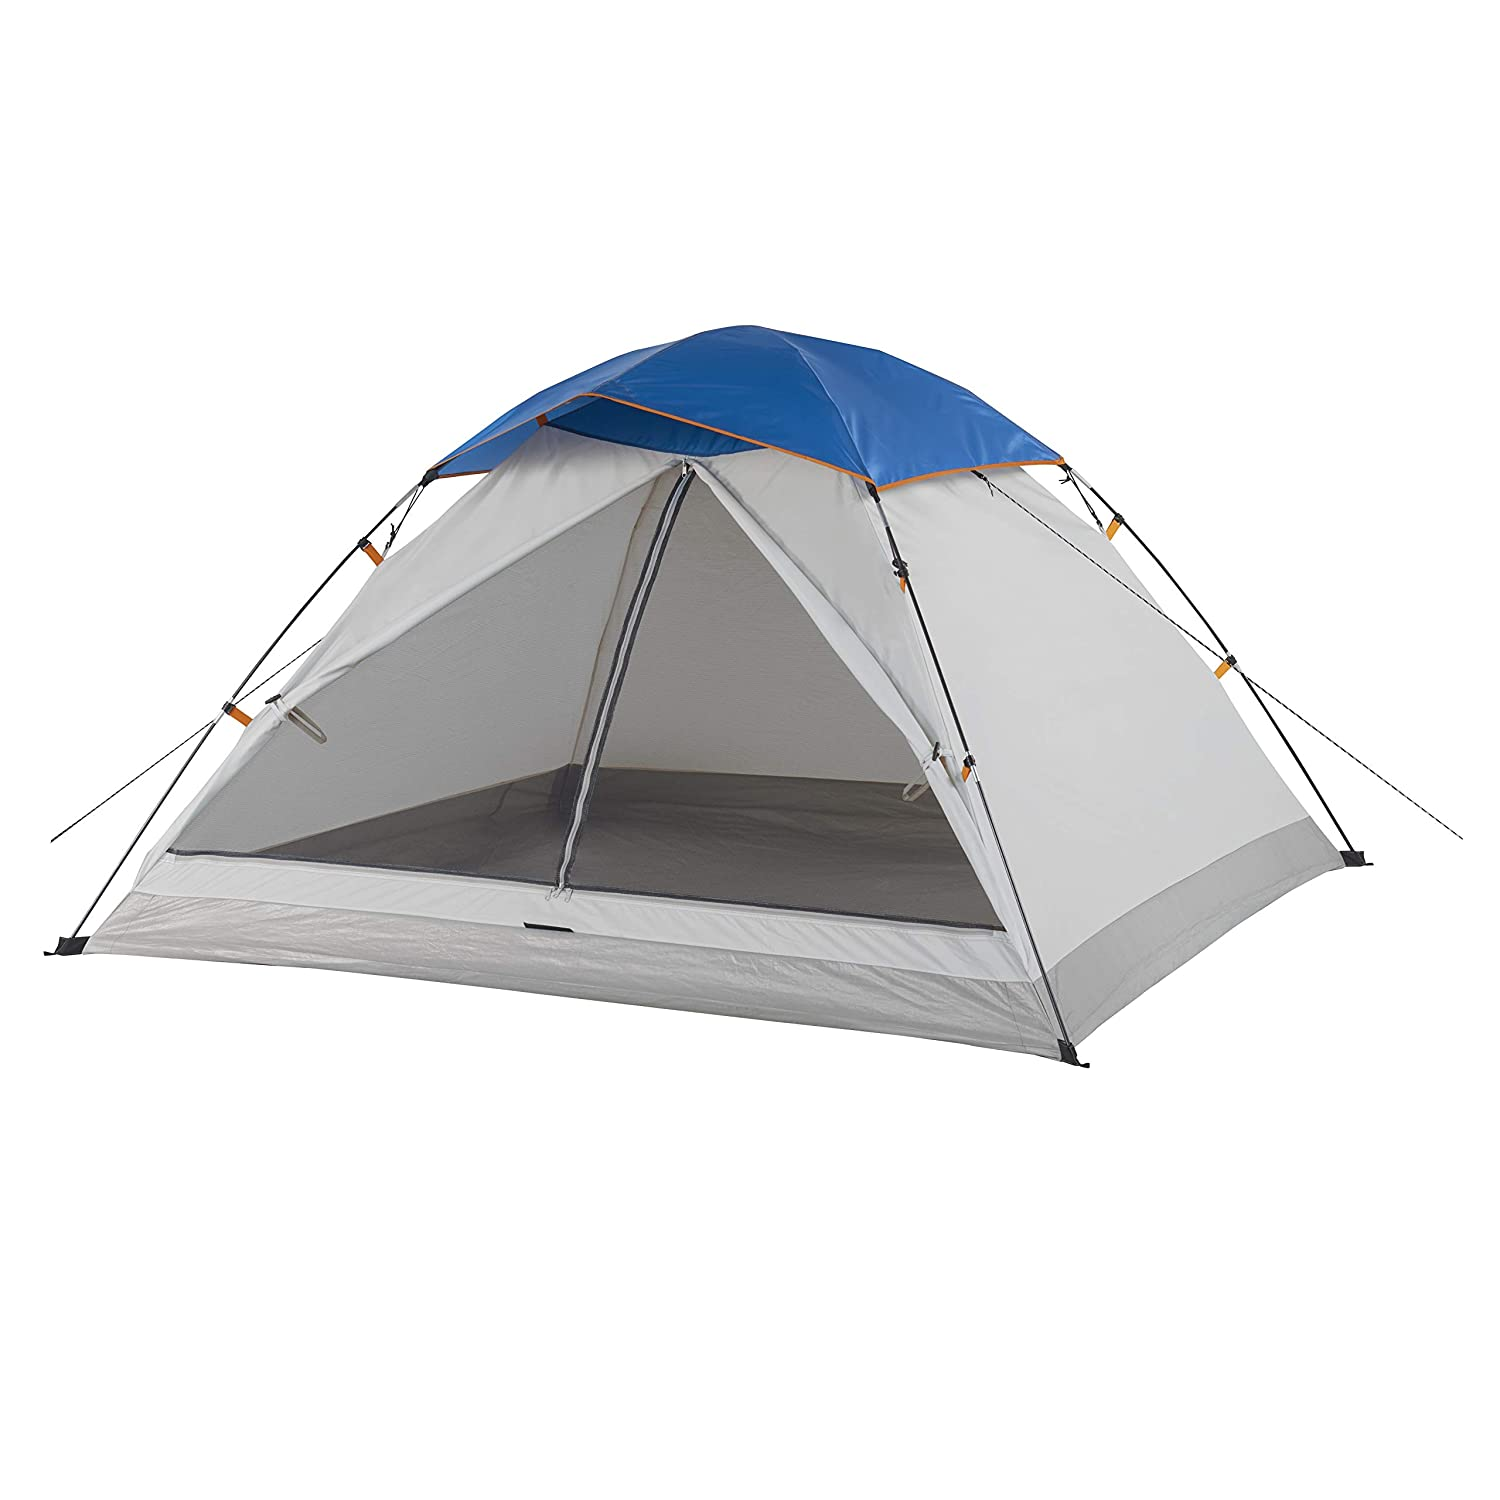 Suisse Sport Dome Tent – 3 Person